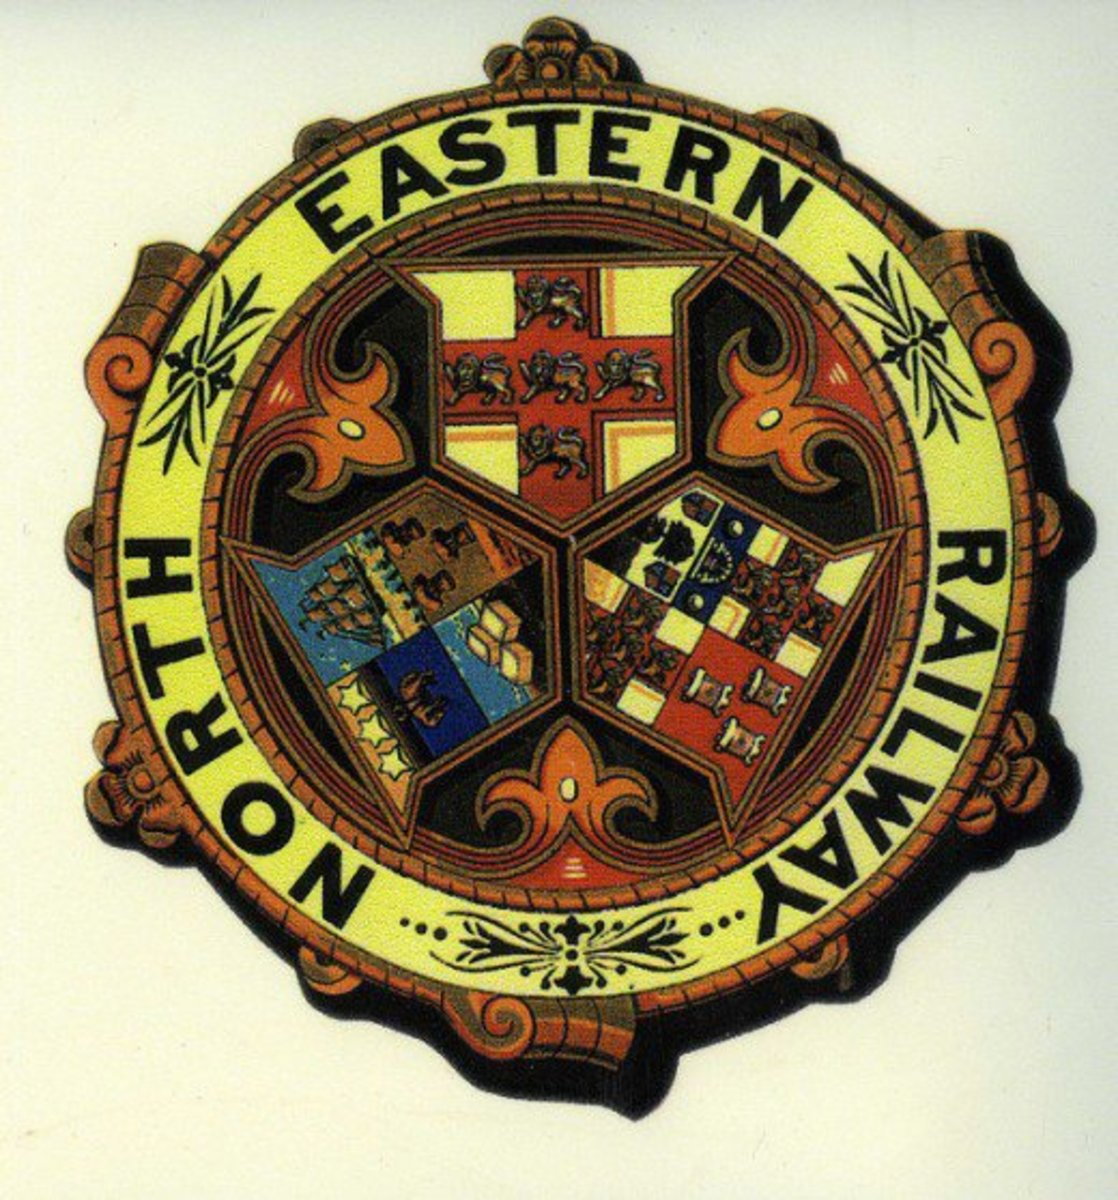 Further in time, the North Eastern Railway arms depicts York again at the top, Leeds on the left and Newcastle right